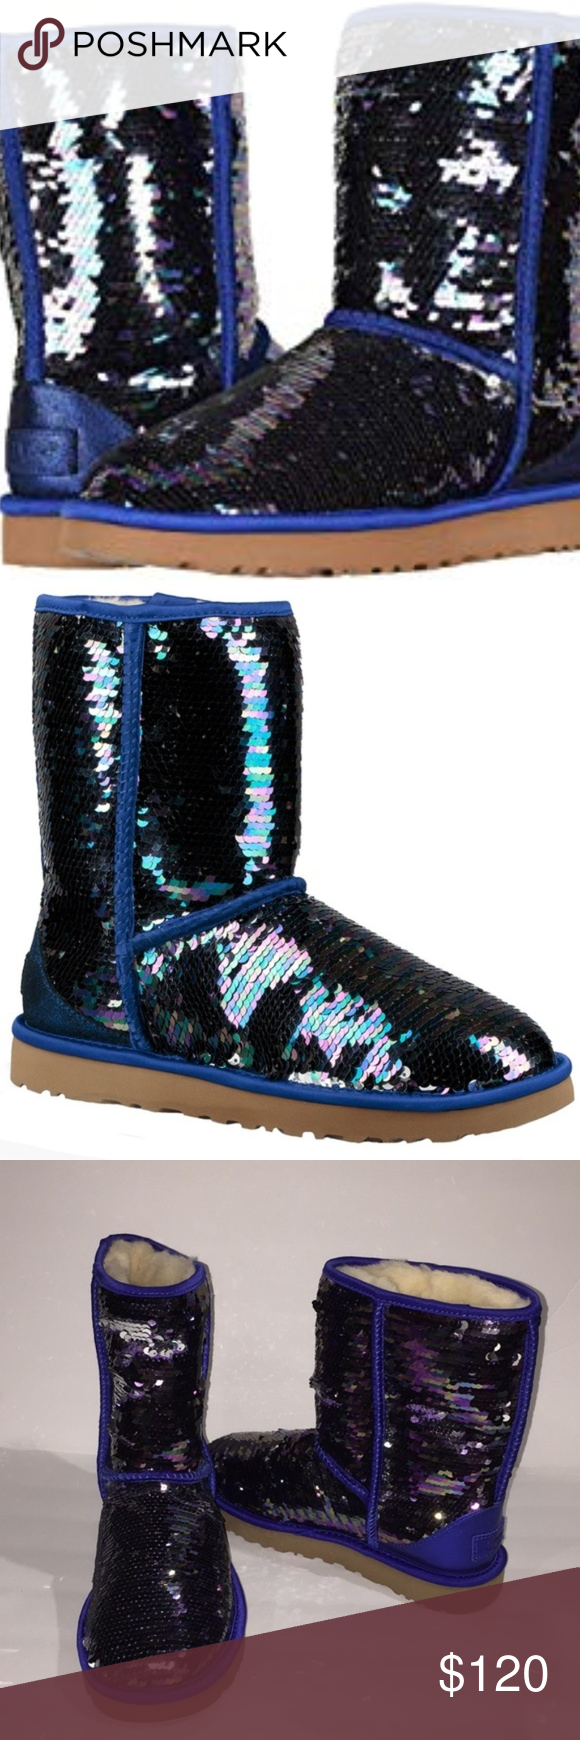 UGG Pure Sequin boots Size 10 in 2020